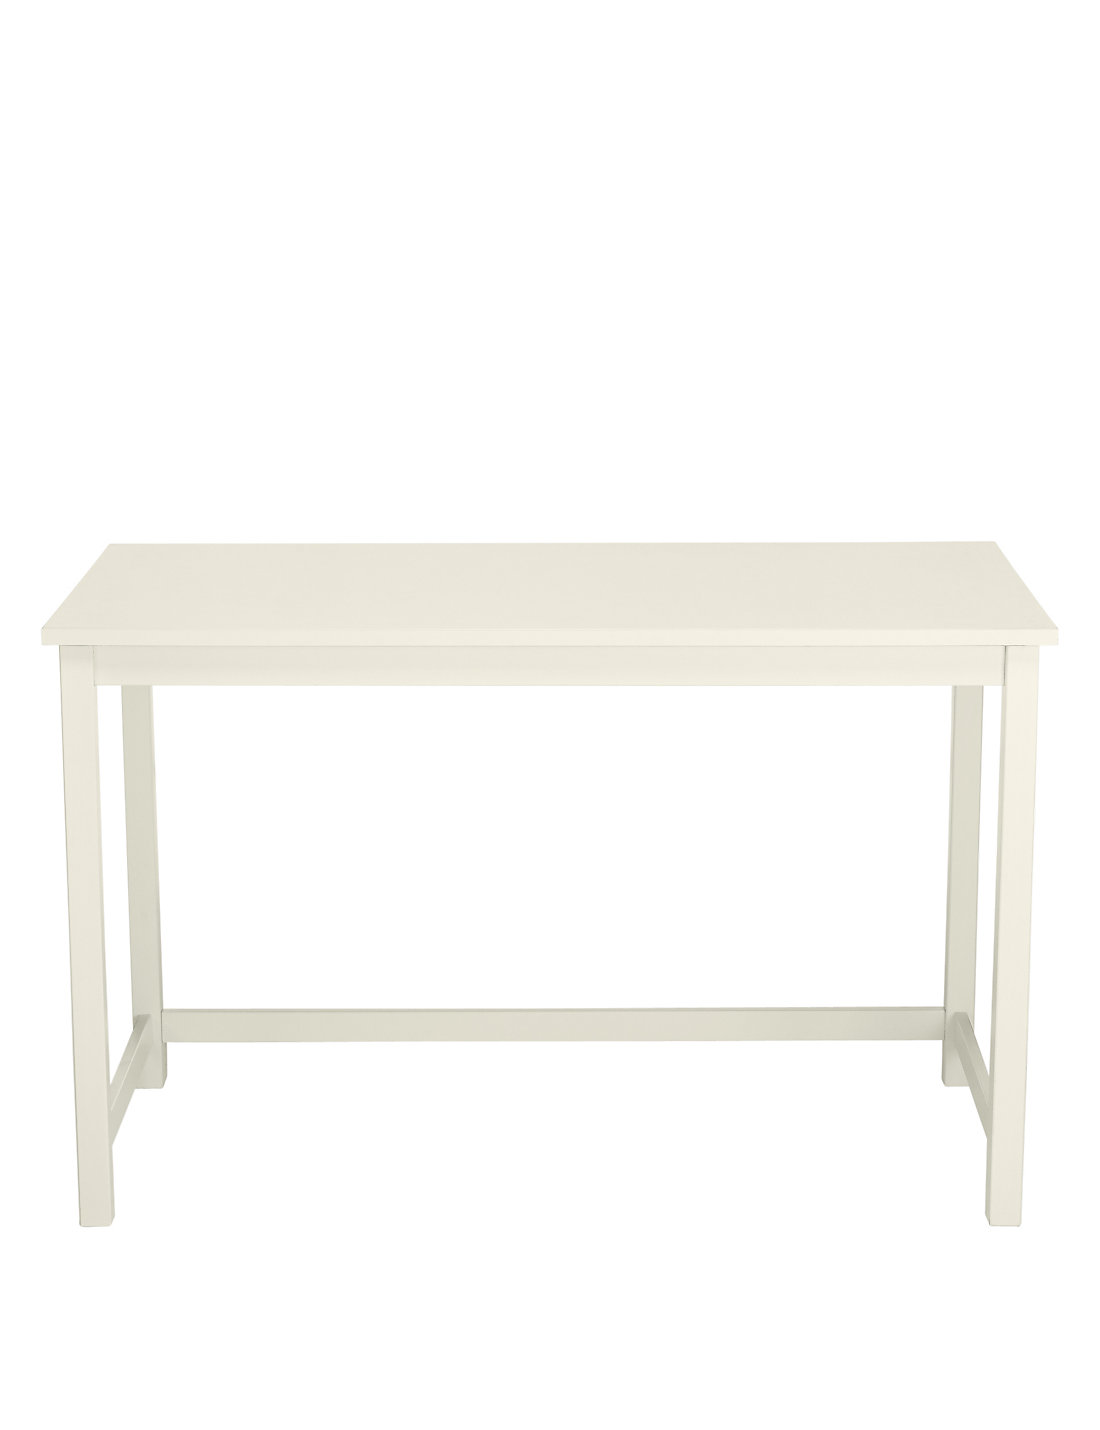 Ms Bedroom Furniture Dawson White Bedroom Furniture Dawson Bedside Tables Beds Ms